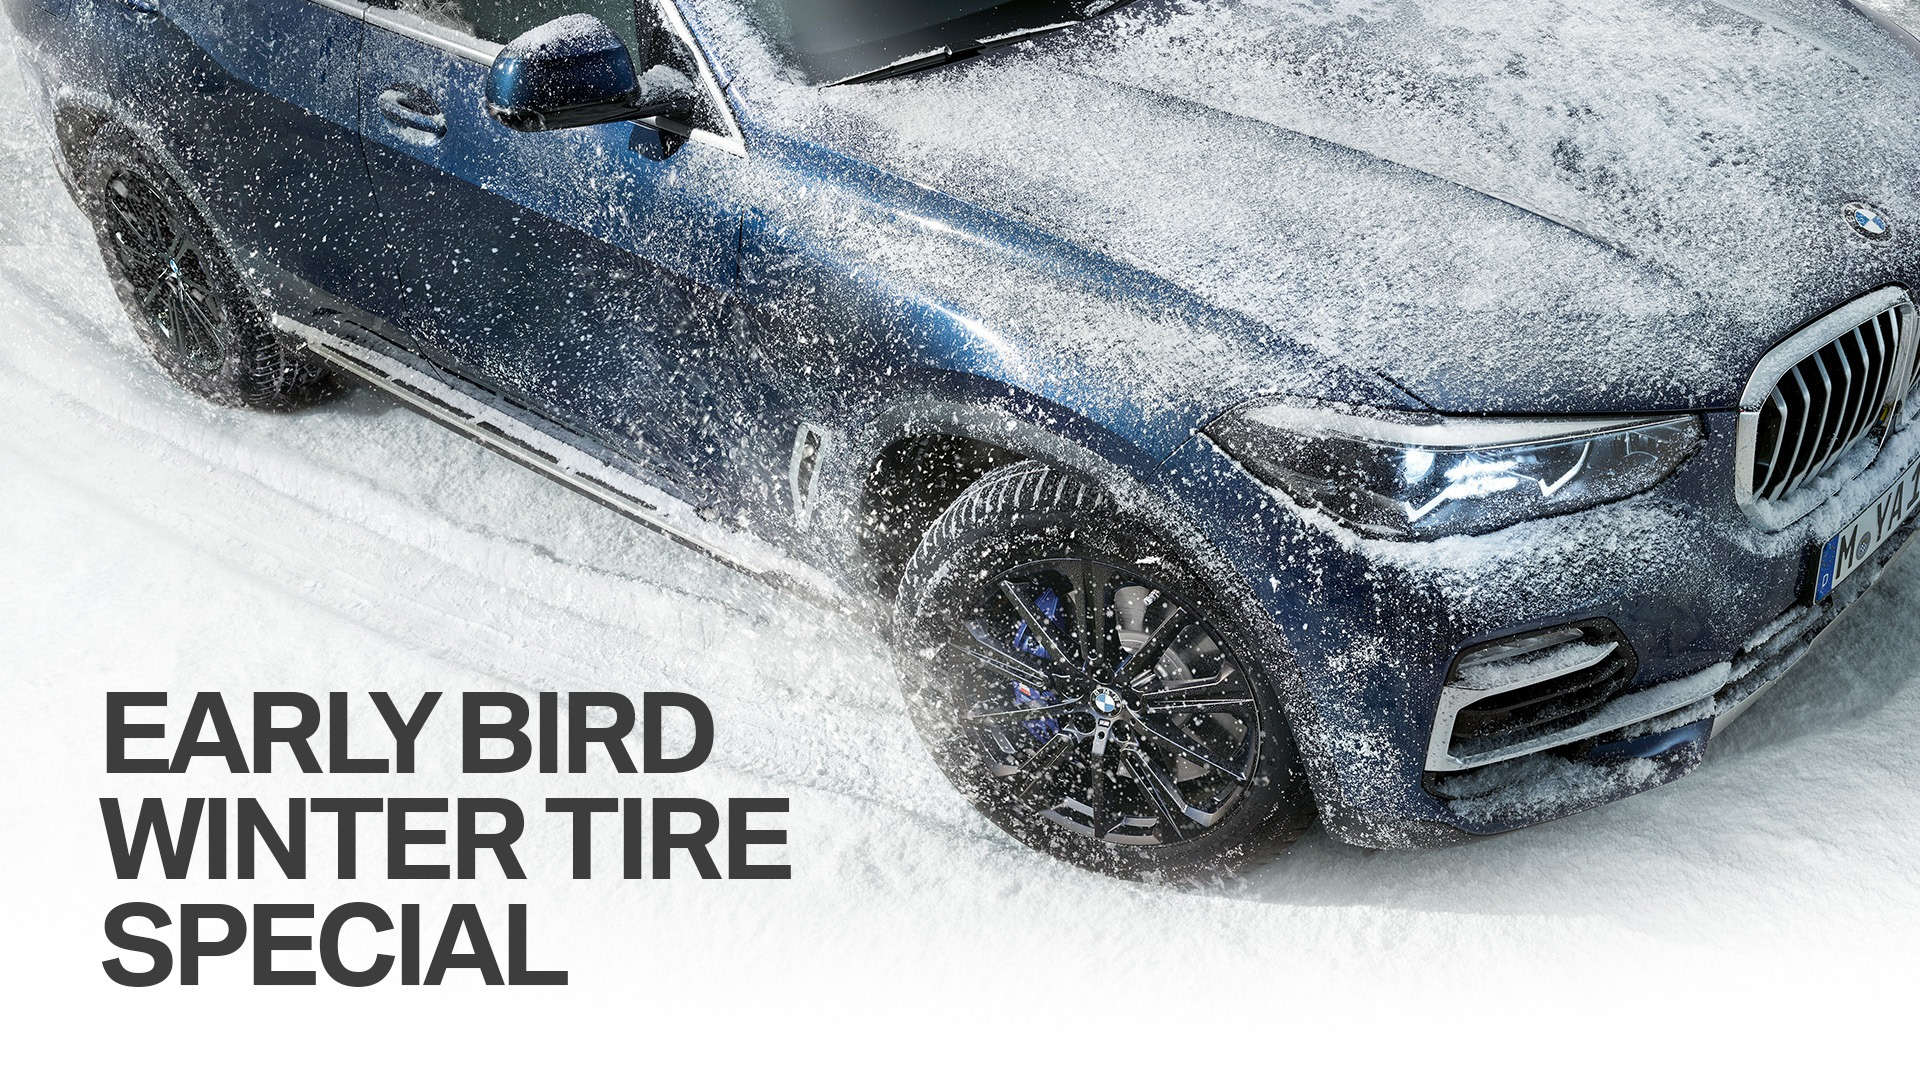 Early Bird Winter Tire Special